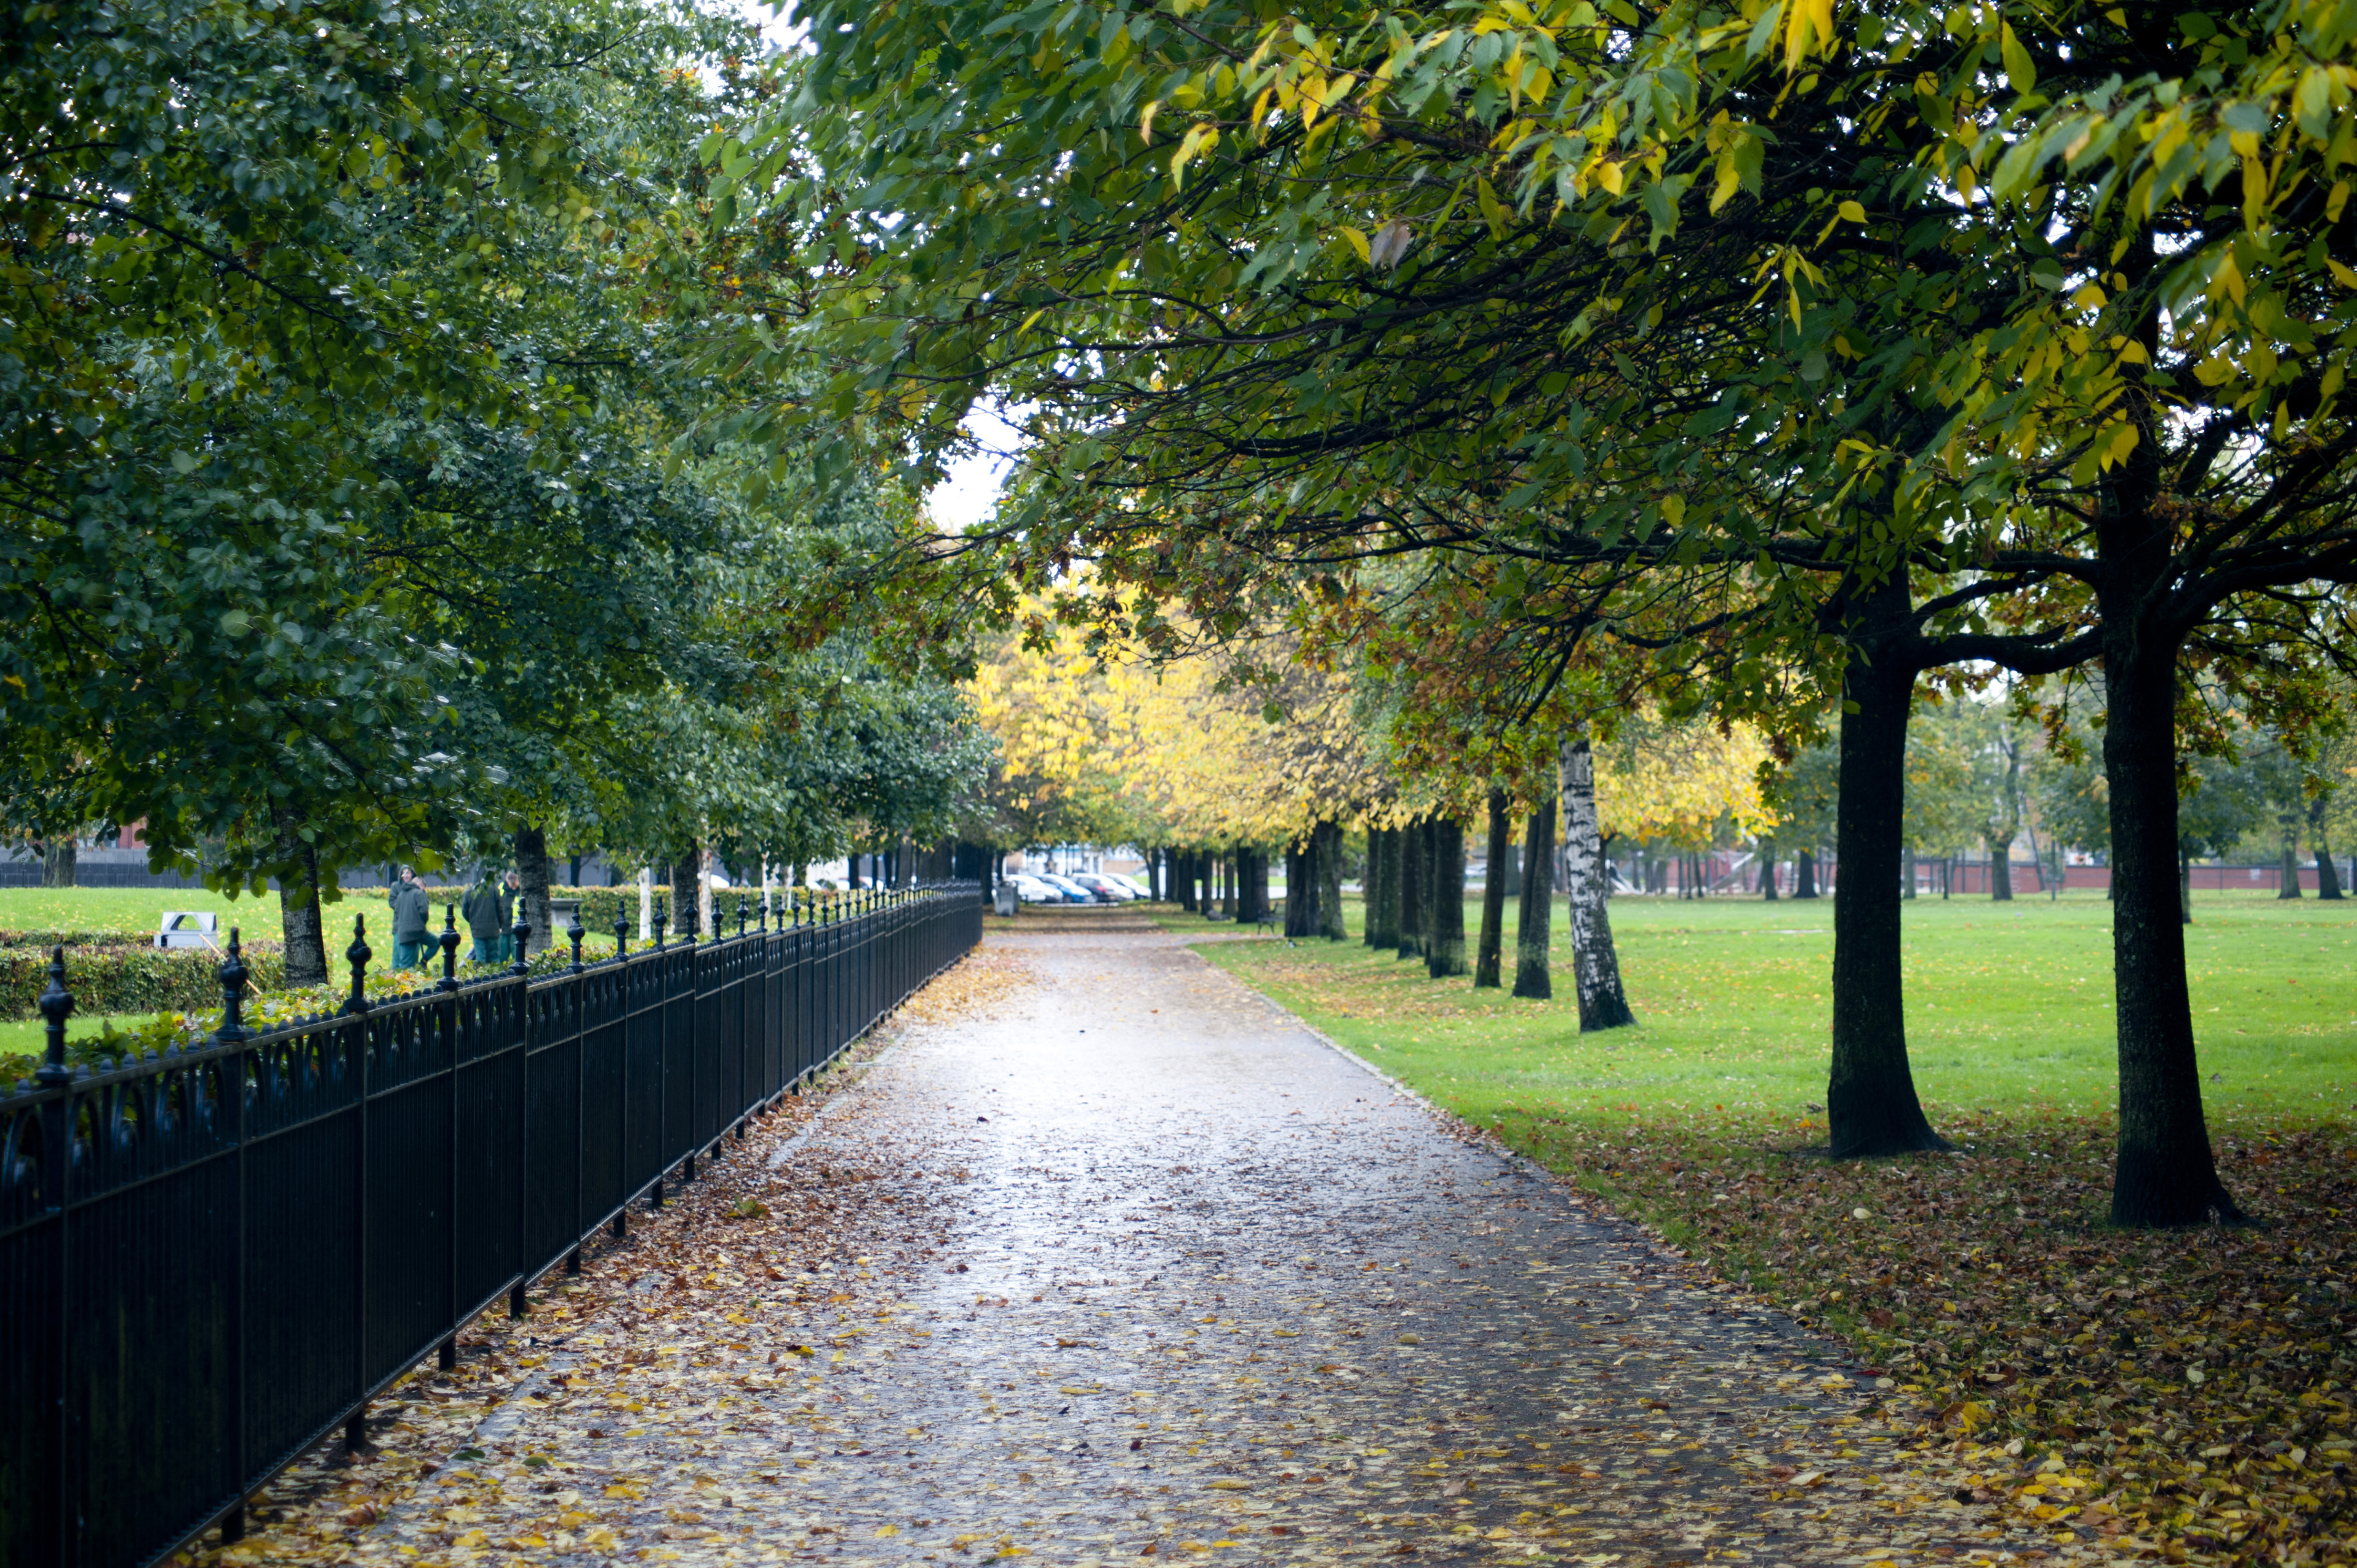 Picturesque tree lined footpath leading through an autumn park with colorful foliage and fallen leaves